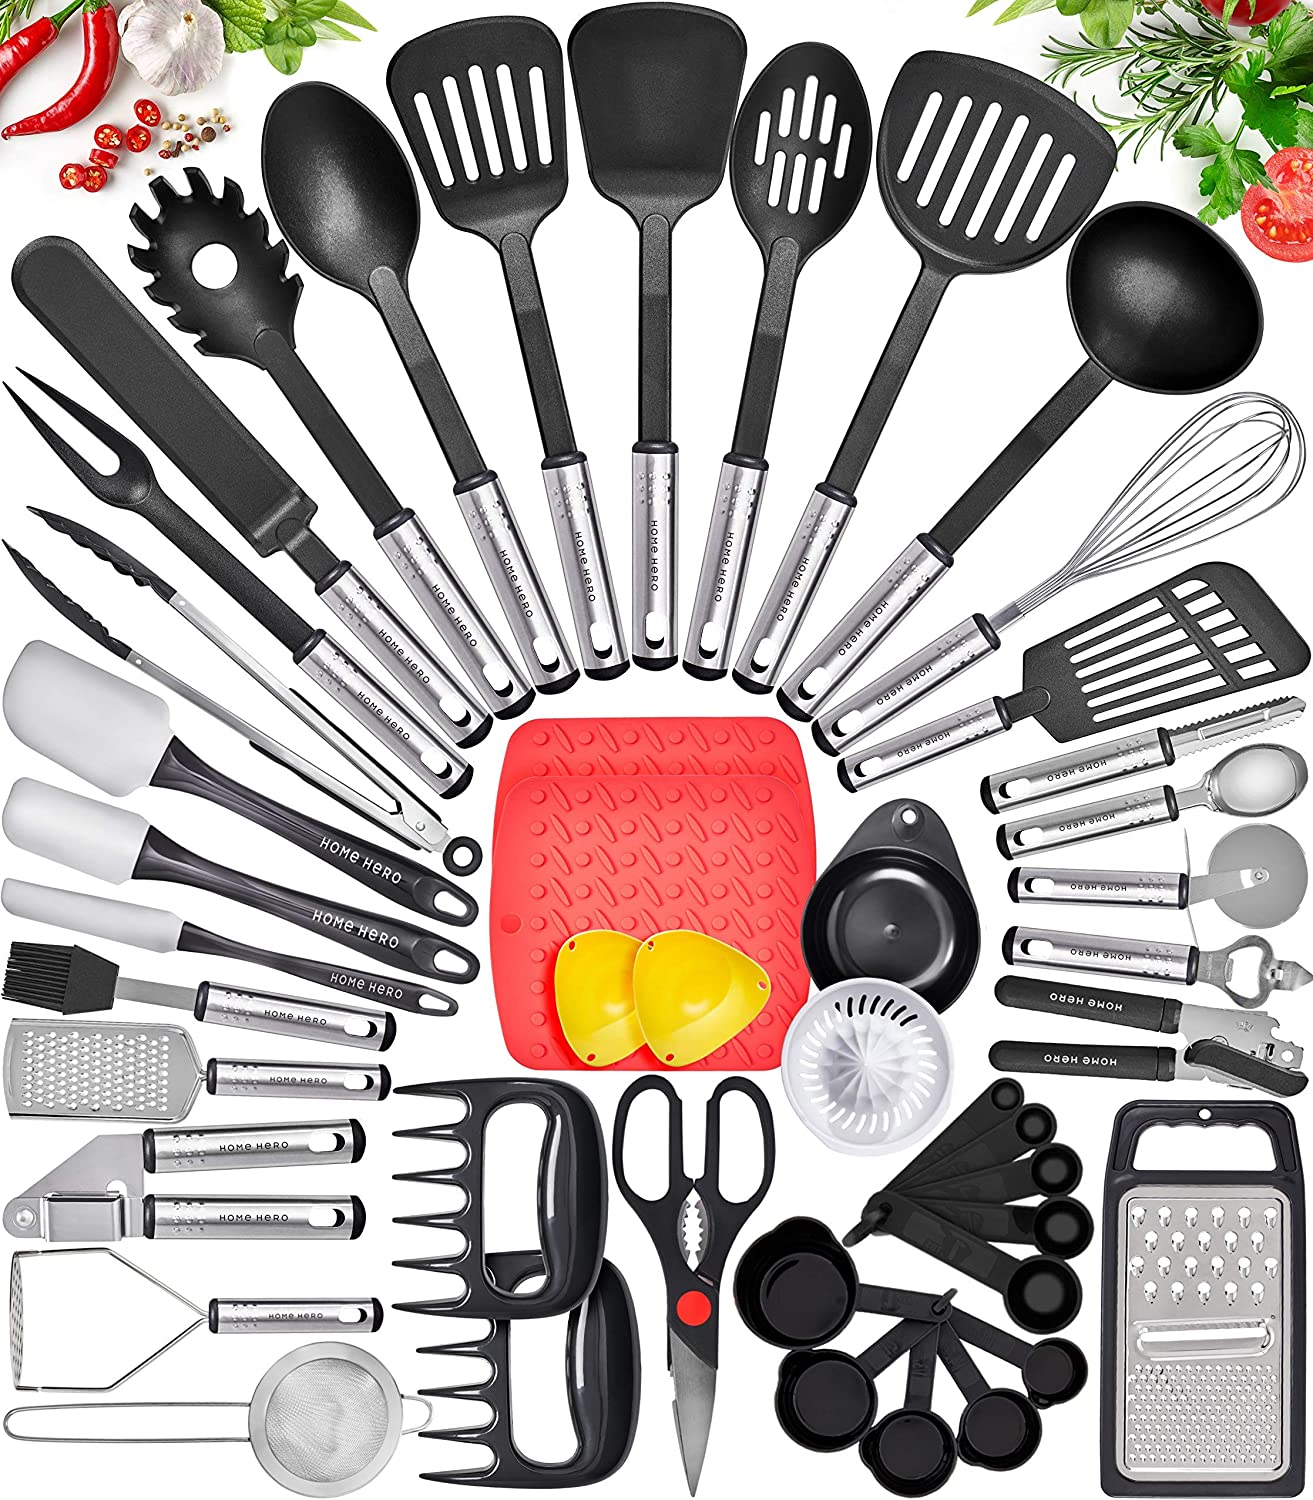 Best Kitchen Utensils Set